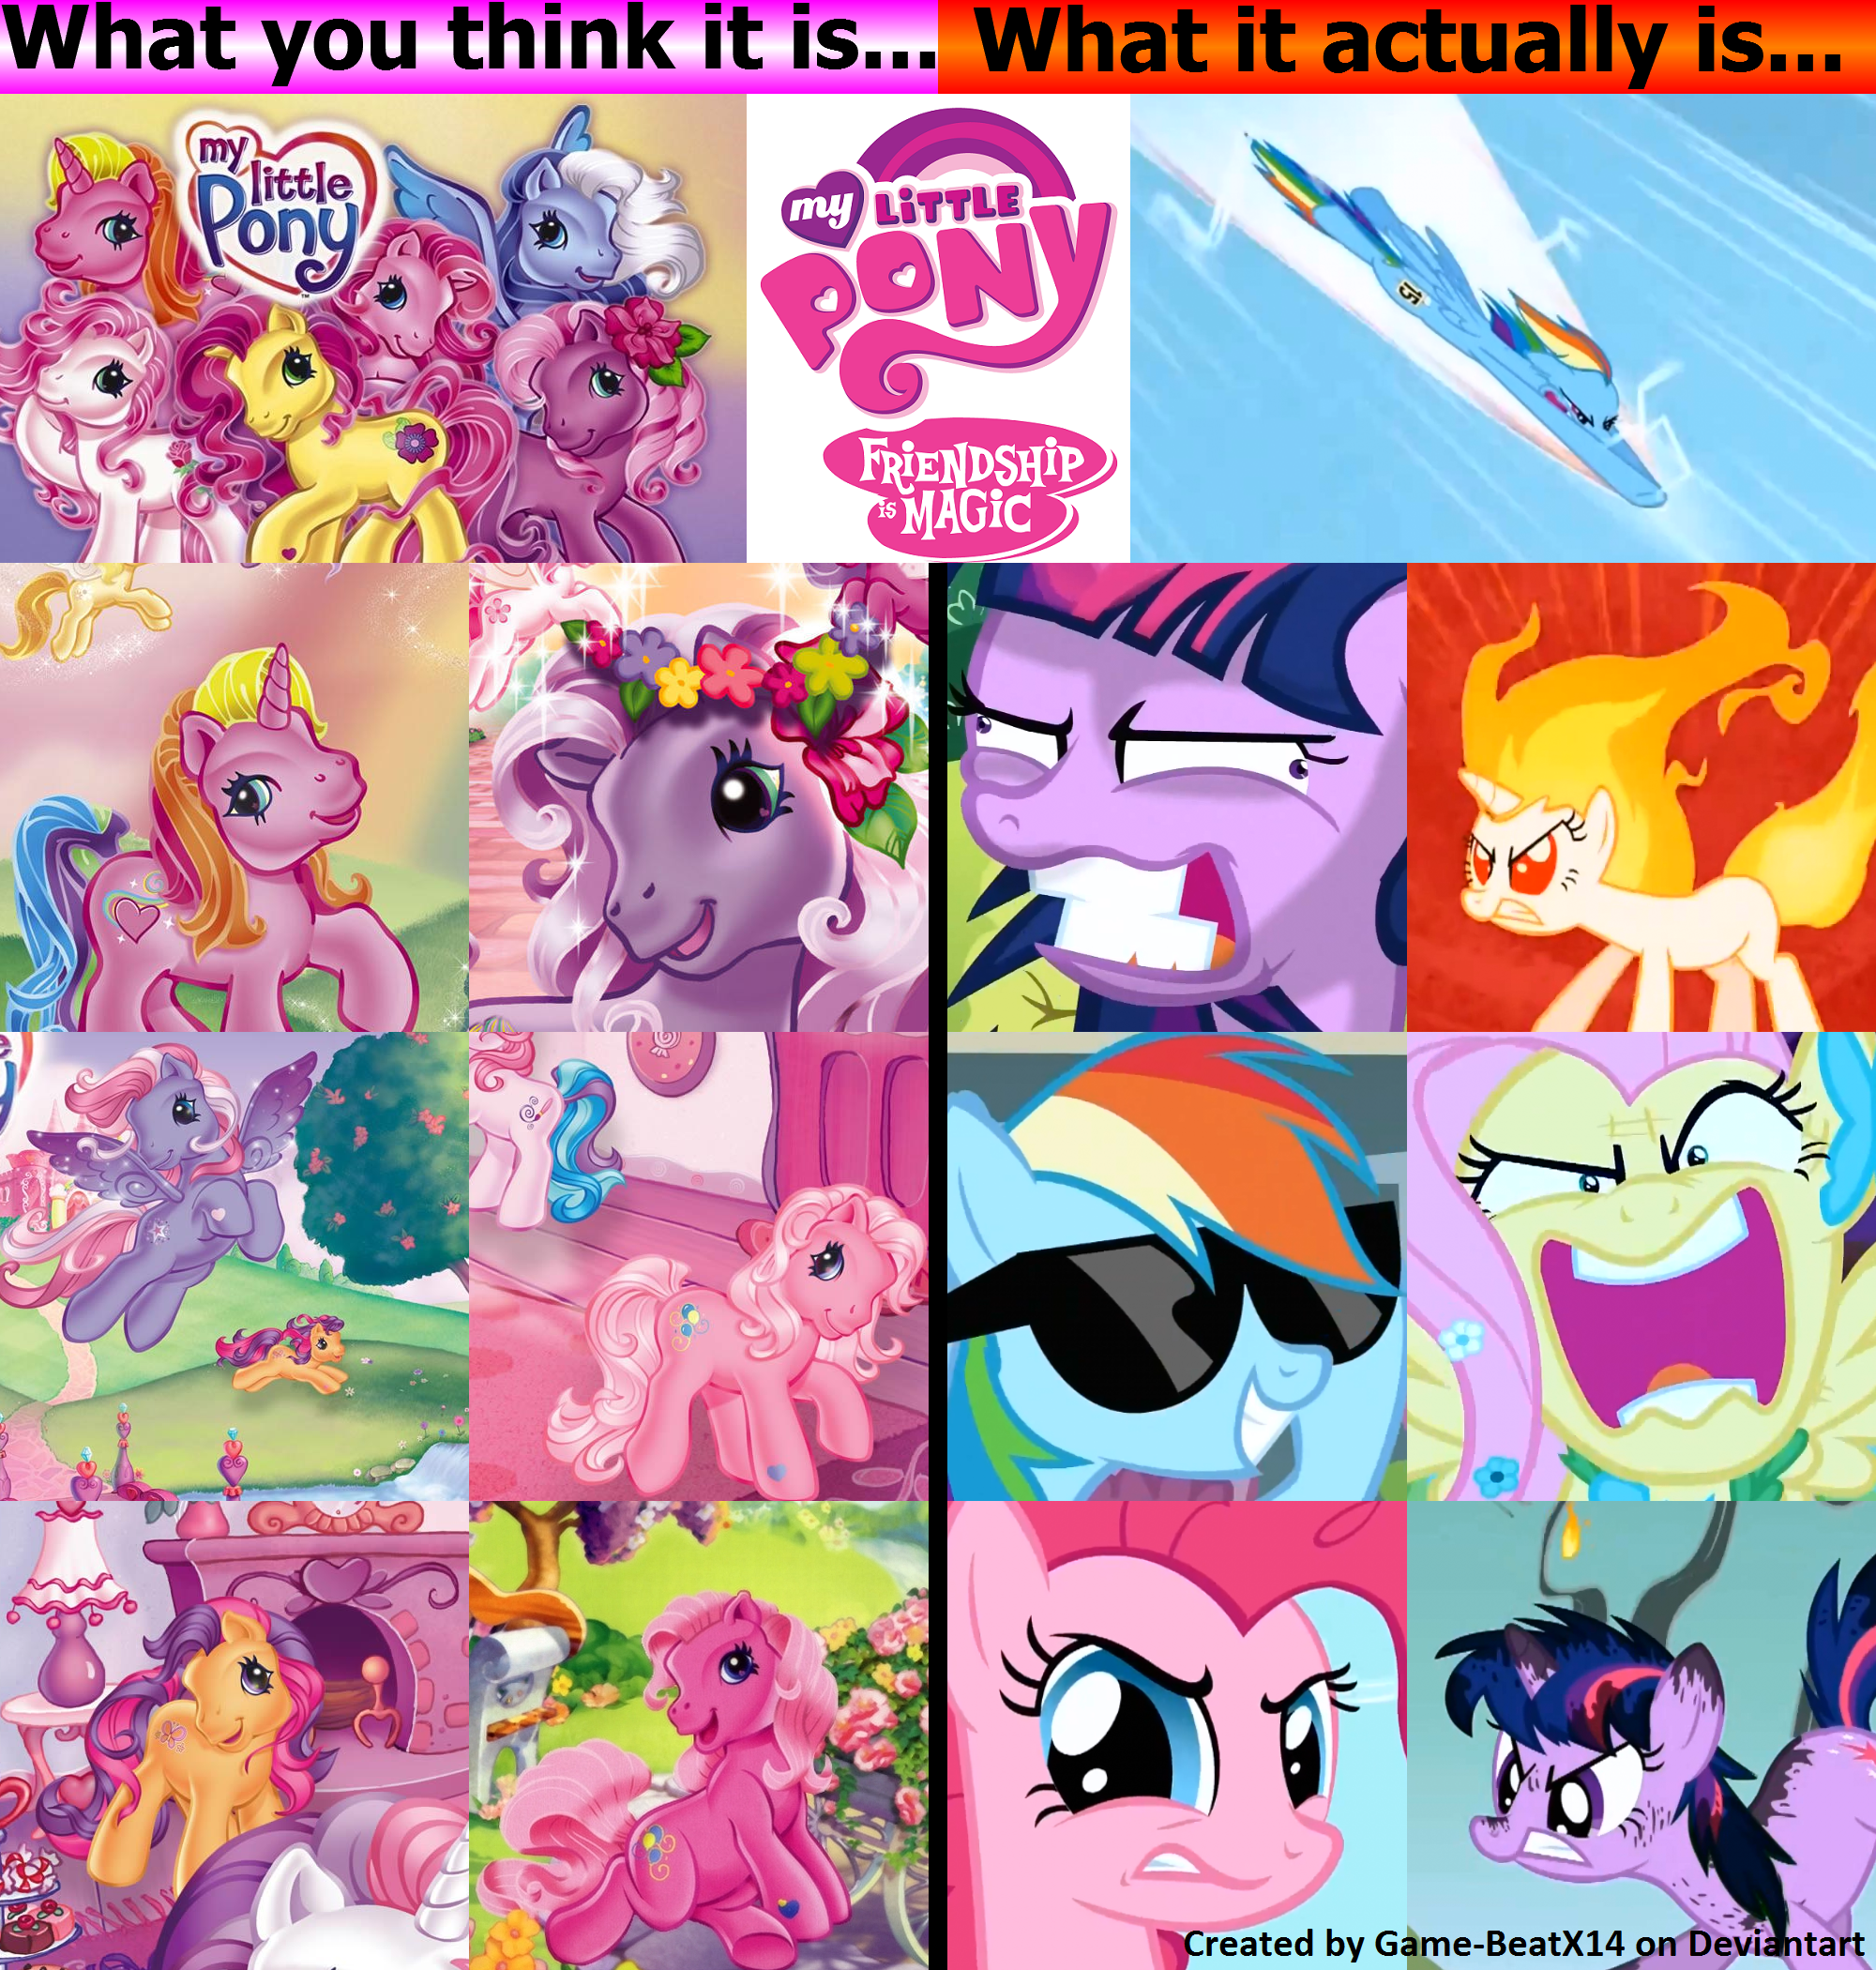 ... released the My Little Pony: Friendship is Magic game last